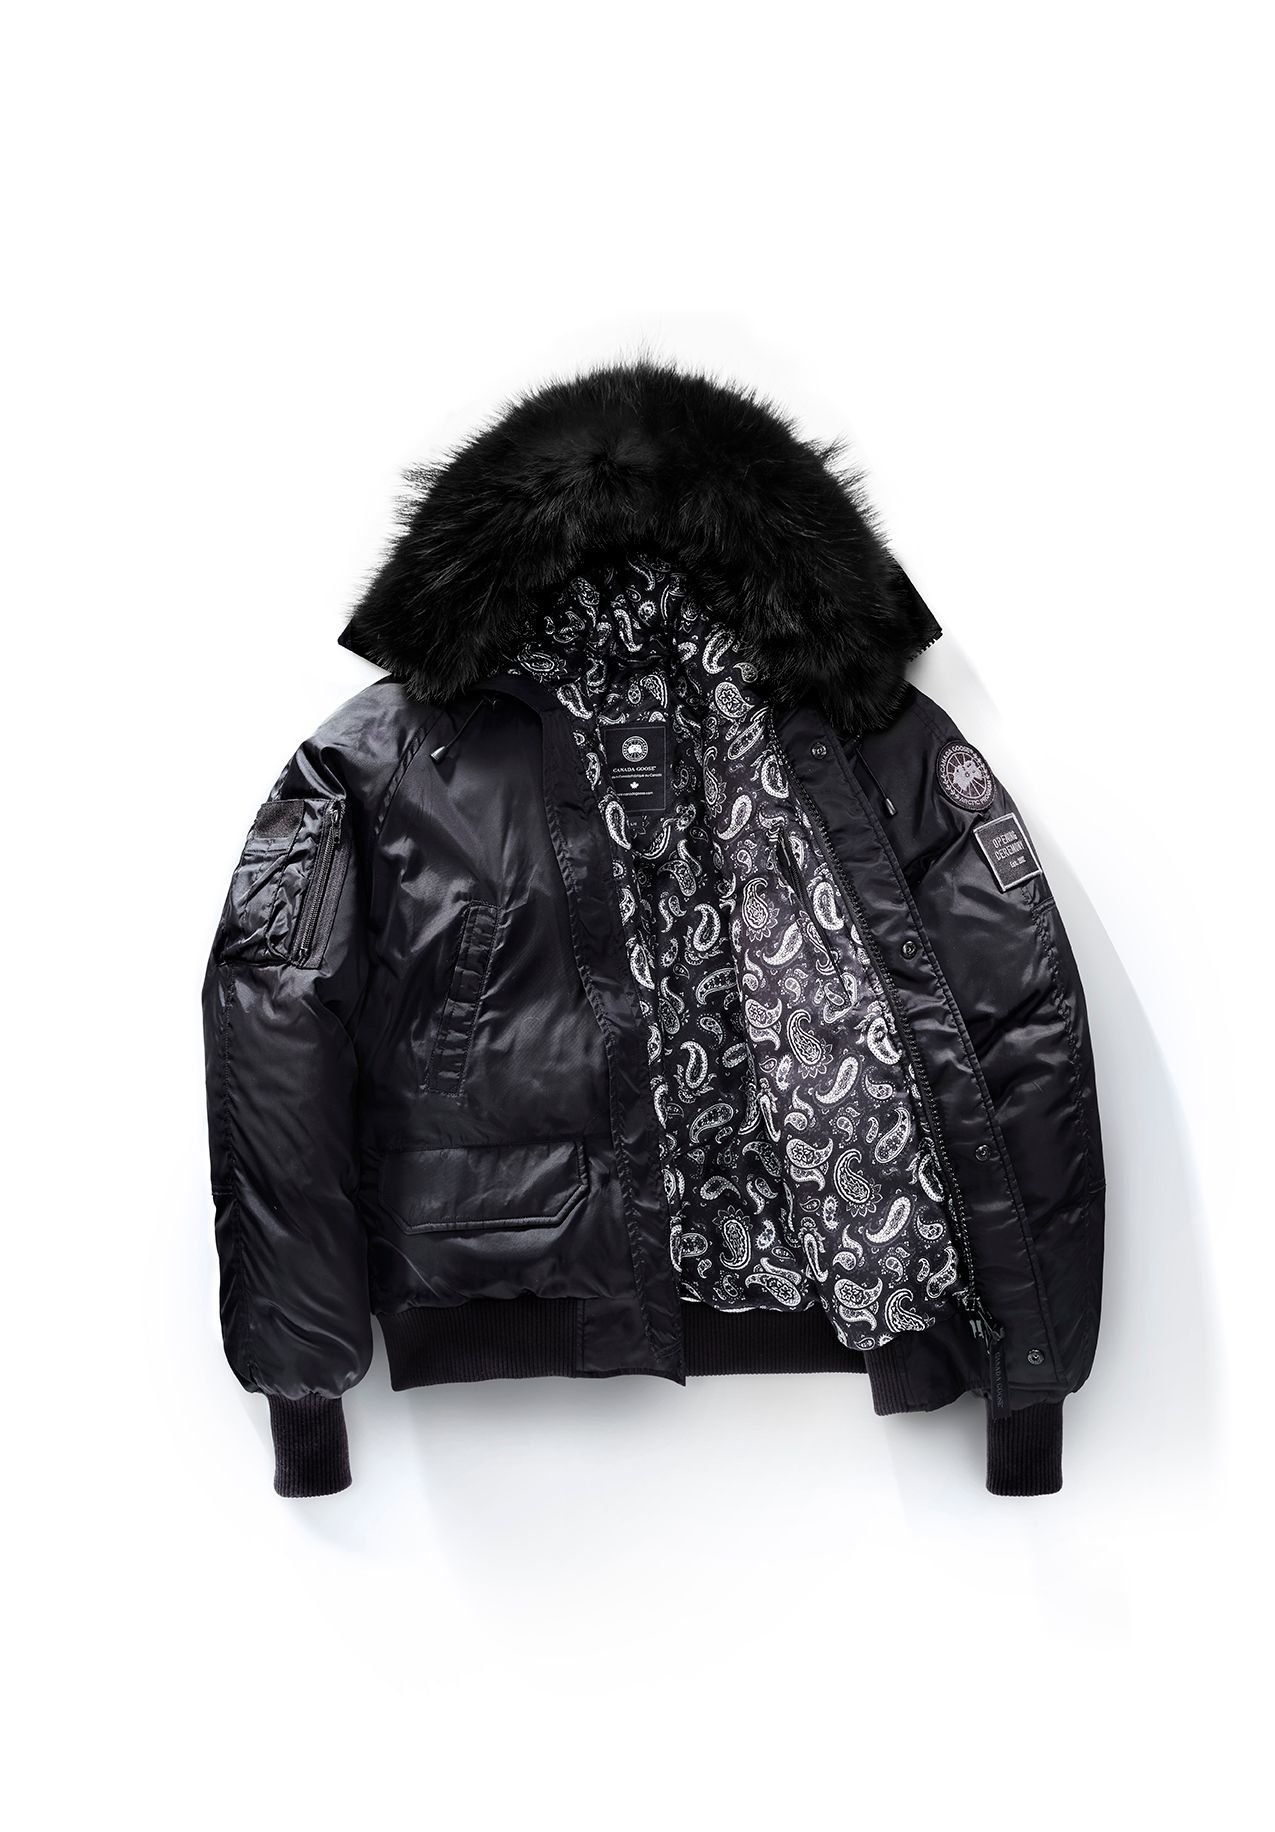 f805578c8 Canada Goose Is Making Puffer Coats With Opening Ceremony